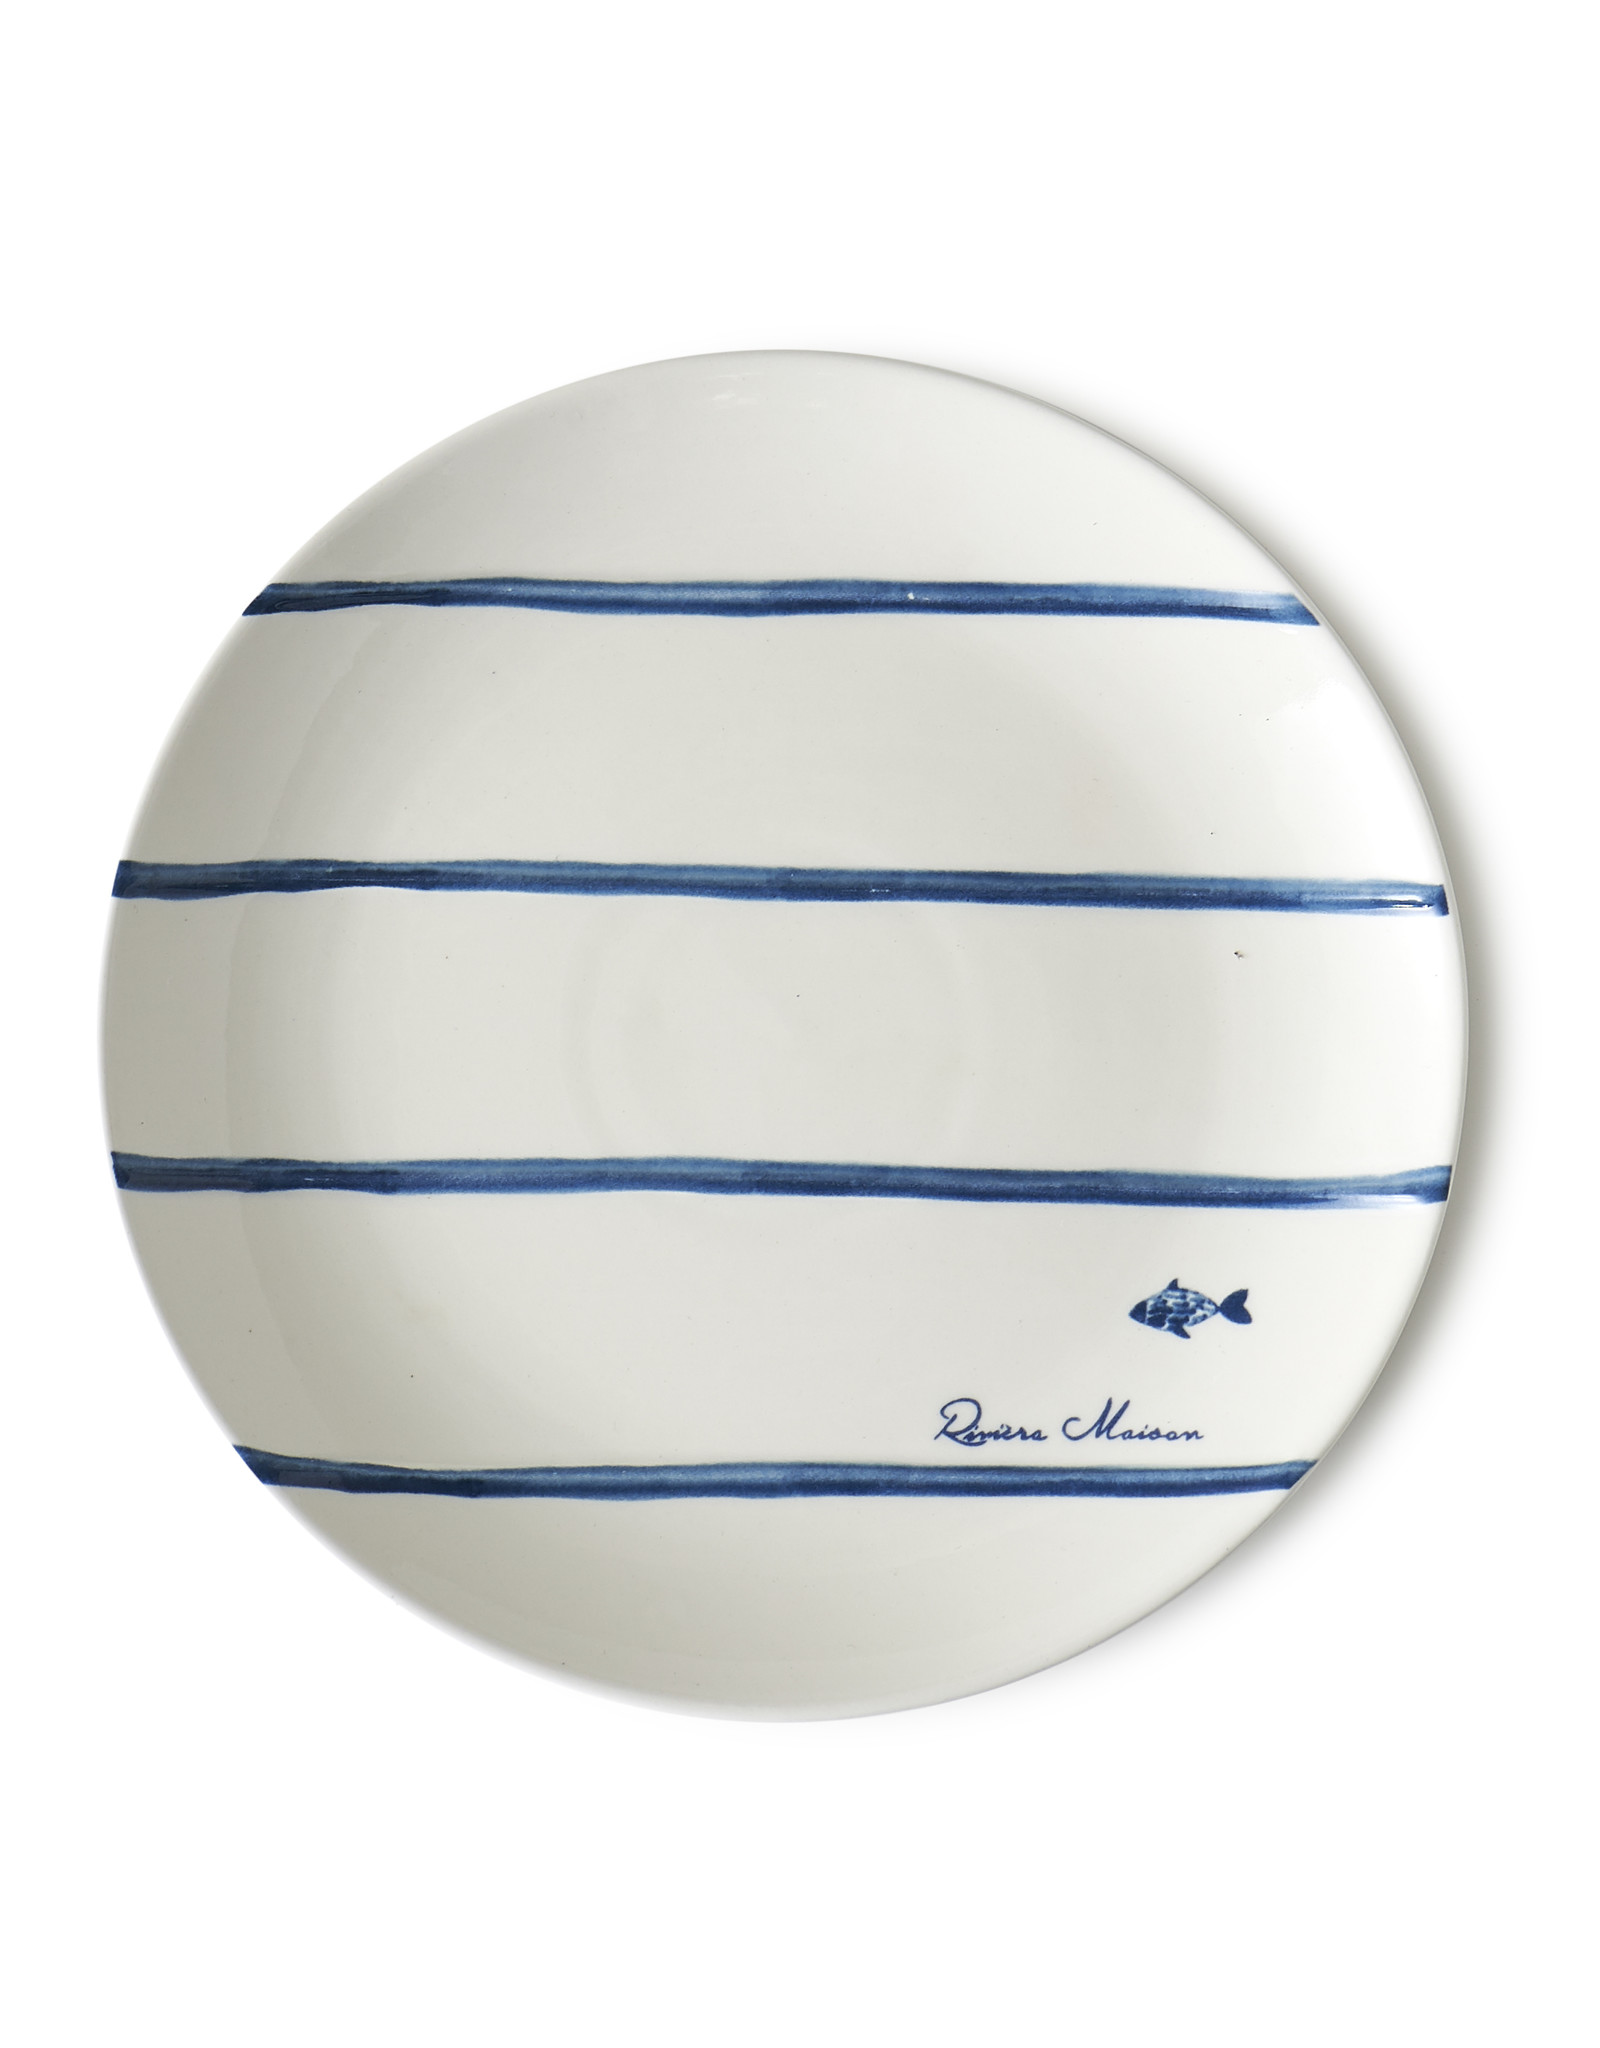 Riviera Maison Catch of the day stripe plate